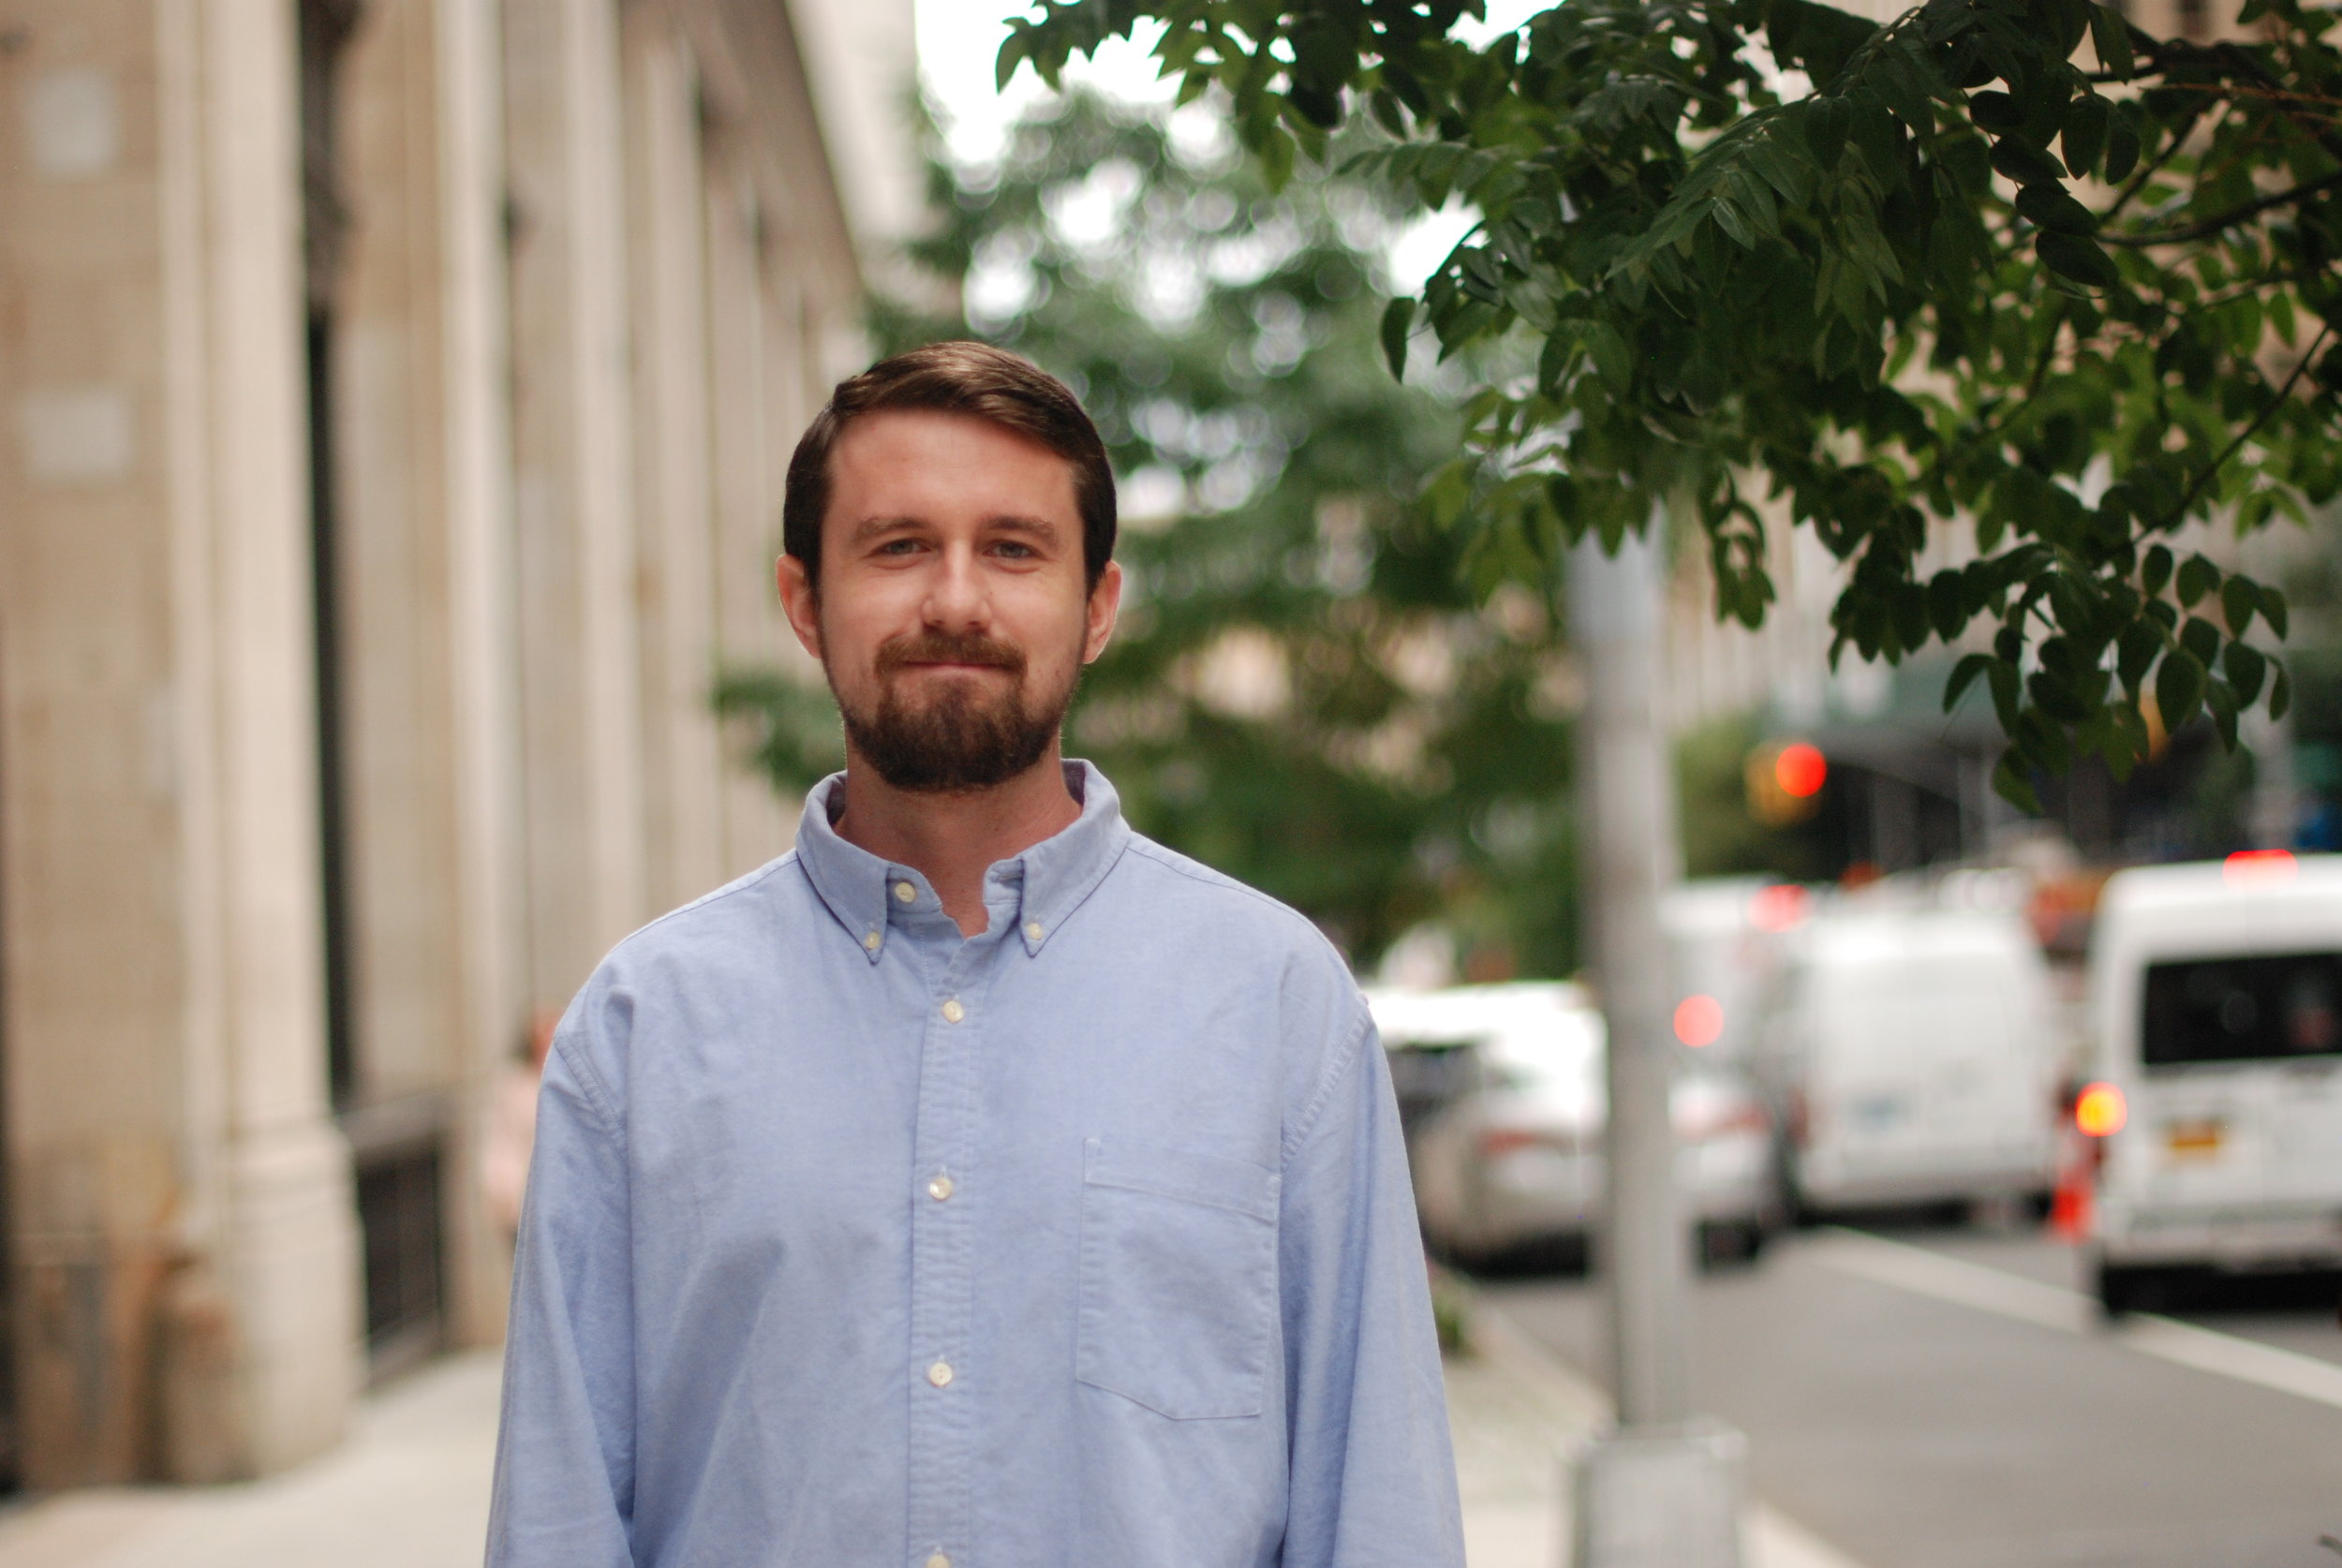 Austin holds a Master's Degree in Structural Engineering and a Bachelor's Degree in Civil Engineering from University of Georgia. Prior to joining our team he worked for Georgia Civil and Whiting-Turner as a project and field engineer. He also worked as a Graduate Research and Teaching Assistant at University of Georgia.